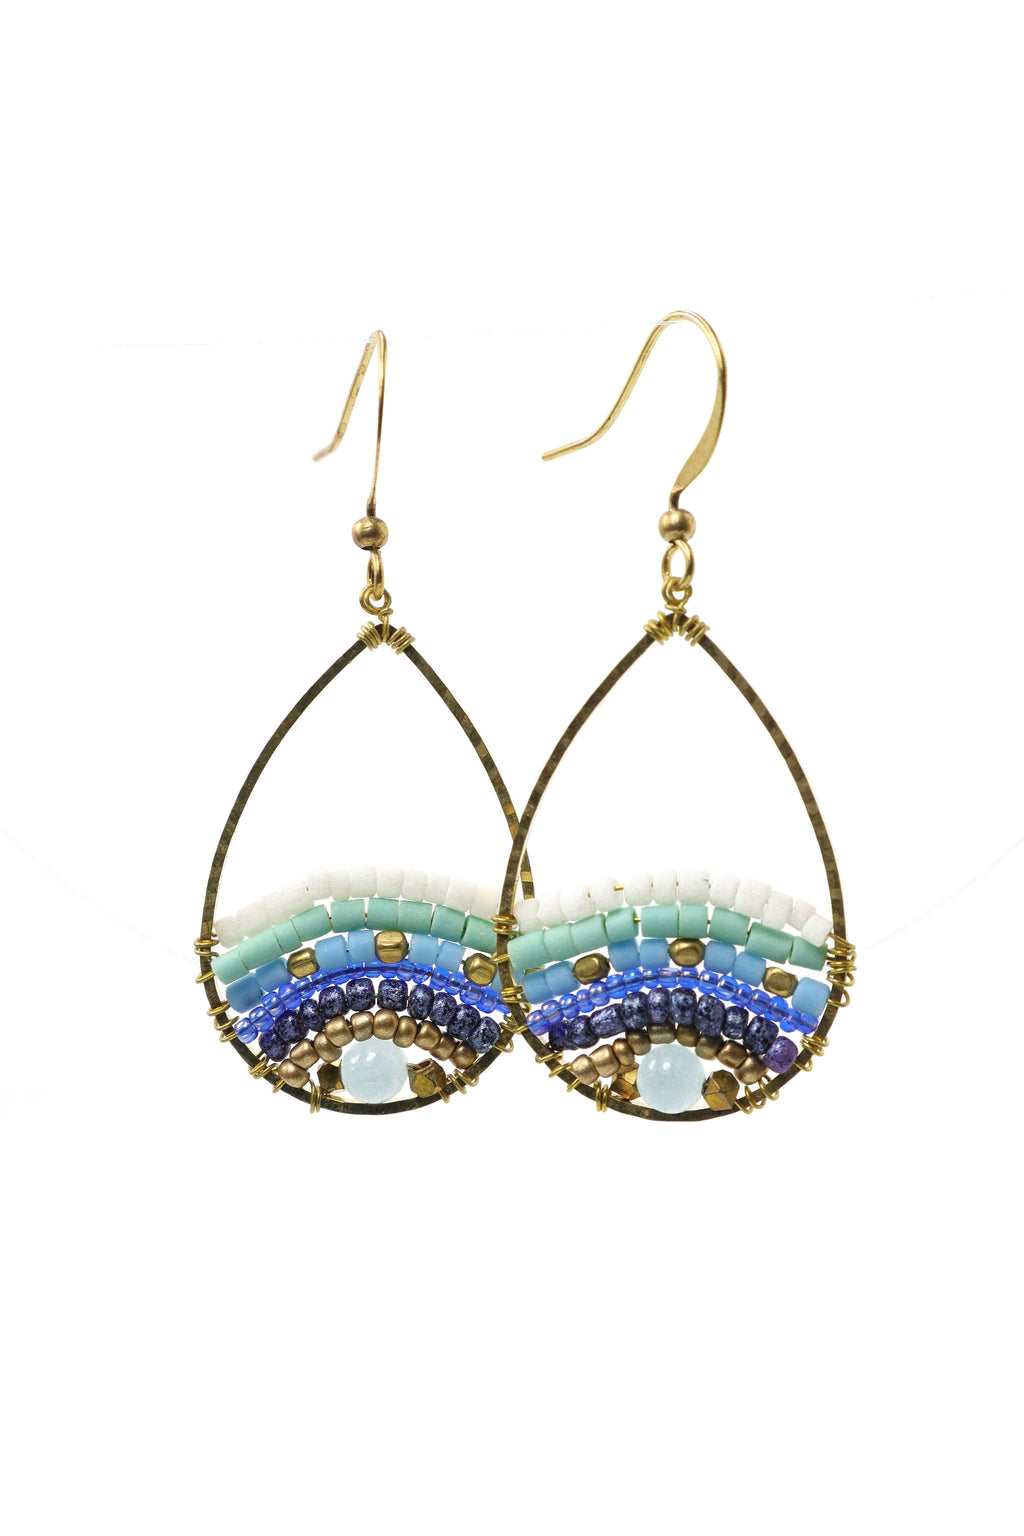 These are small teardrop island-style beaded earrings with fantastic shades of blue. They feature Afghani style tube beads, brass and acrylic beads. They are handmade with love in Thailand. This is a Fairtrade Product.